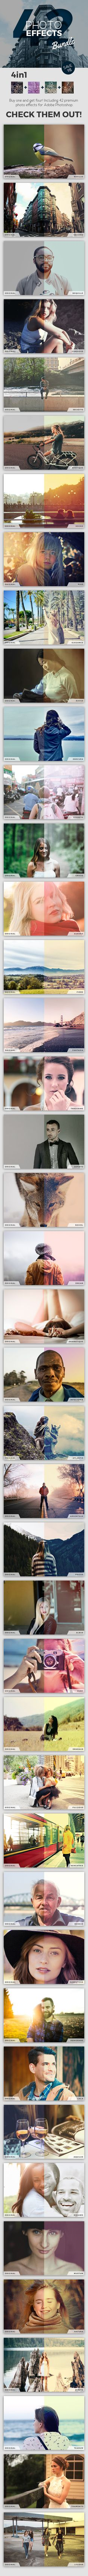 This 4in1 bundle features 4 premium Adobe Photoshop action sets, including a total of 42 stunning and unique effects to spice up your personal photos, your next project or even your photography portfolio!  Get this bundle here: http://bit.ly/1PGq0tP